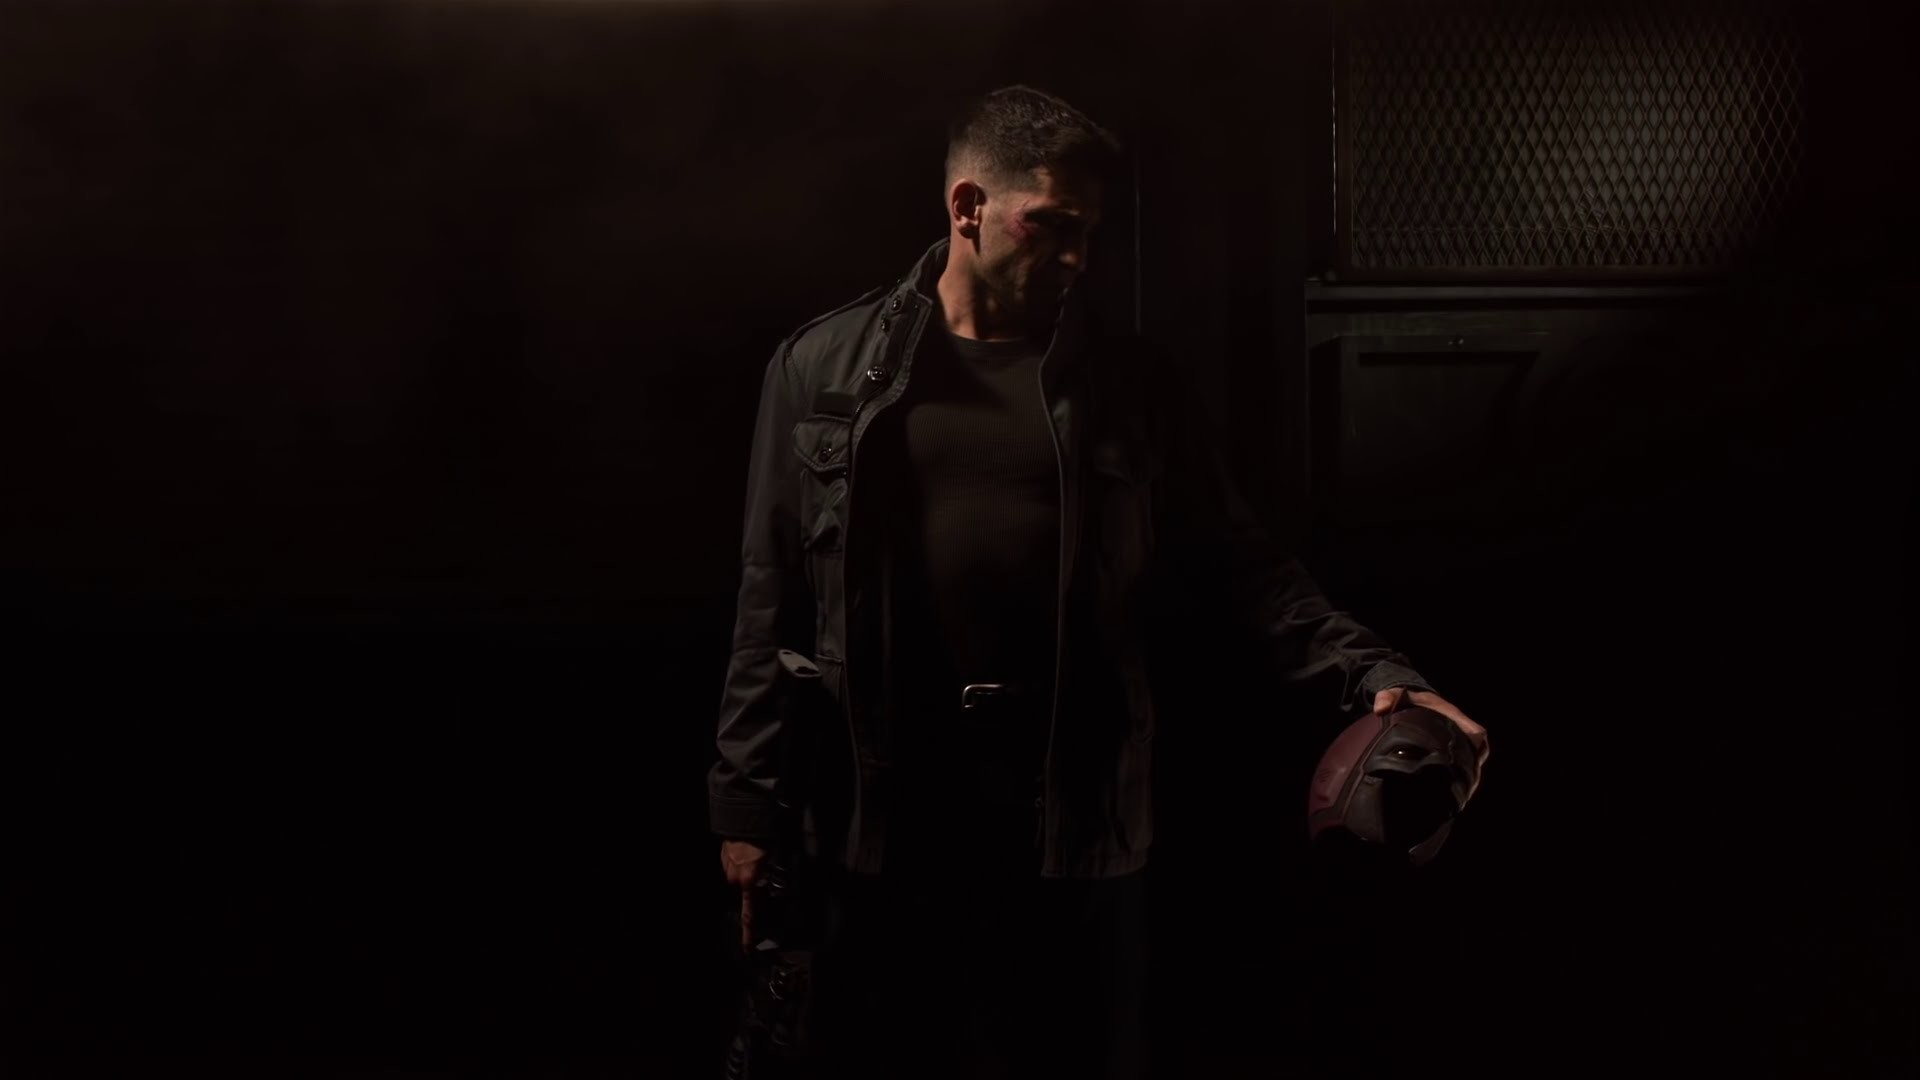 1920x1080 Daredevil (Netflix) images Frank Castle/Punisher HD wallpaper and .